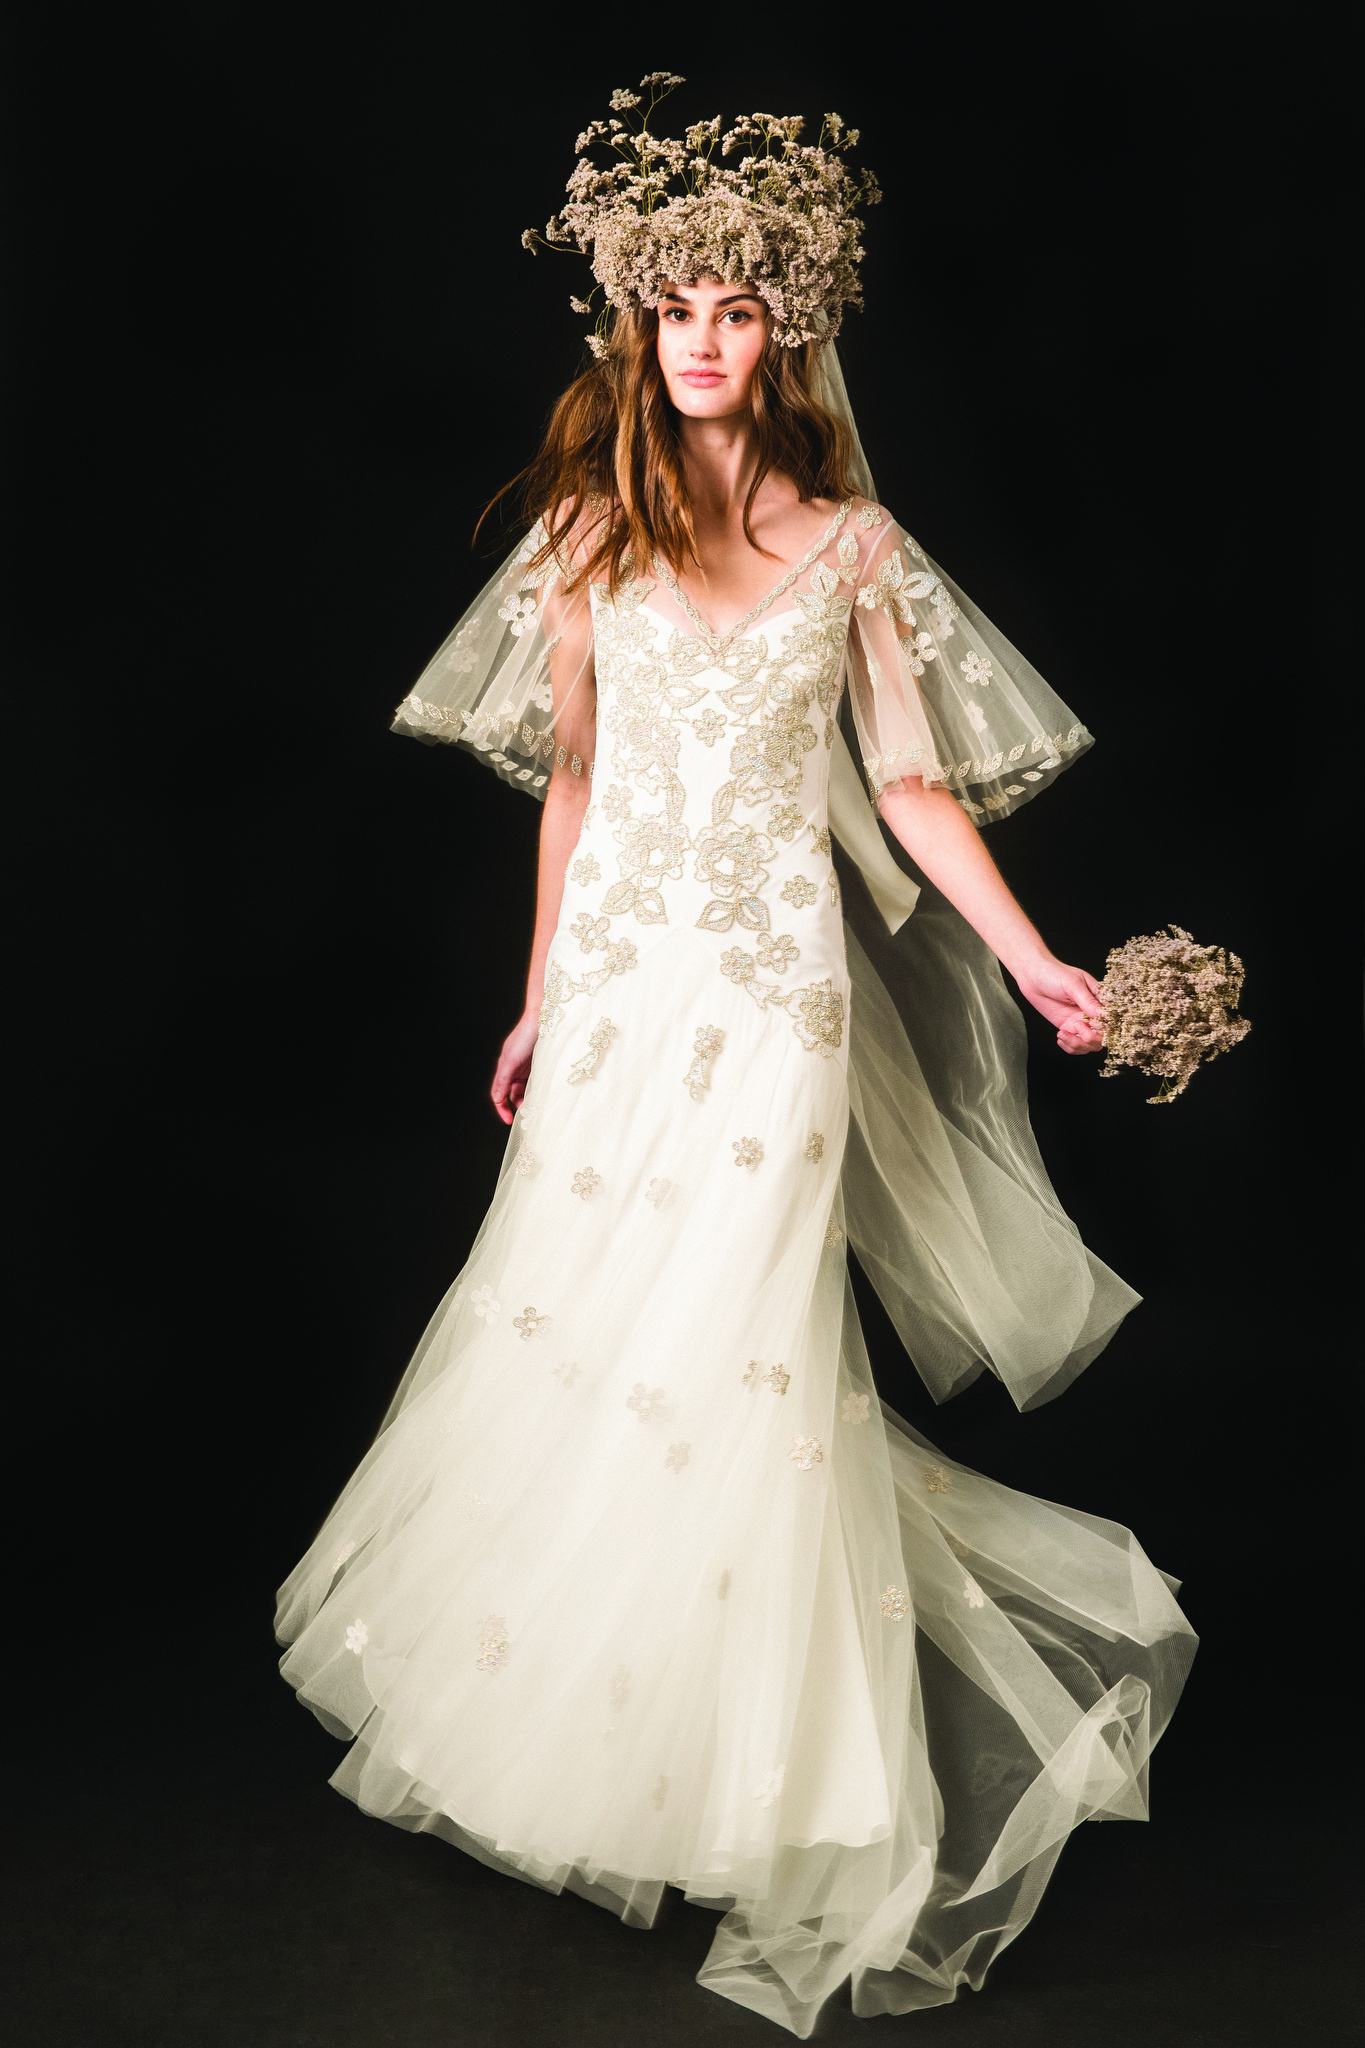 Temperley Bridal Fall 2020